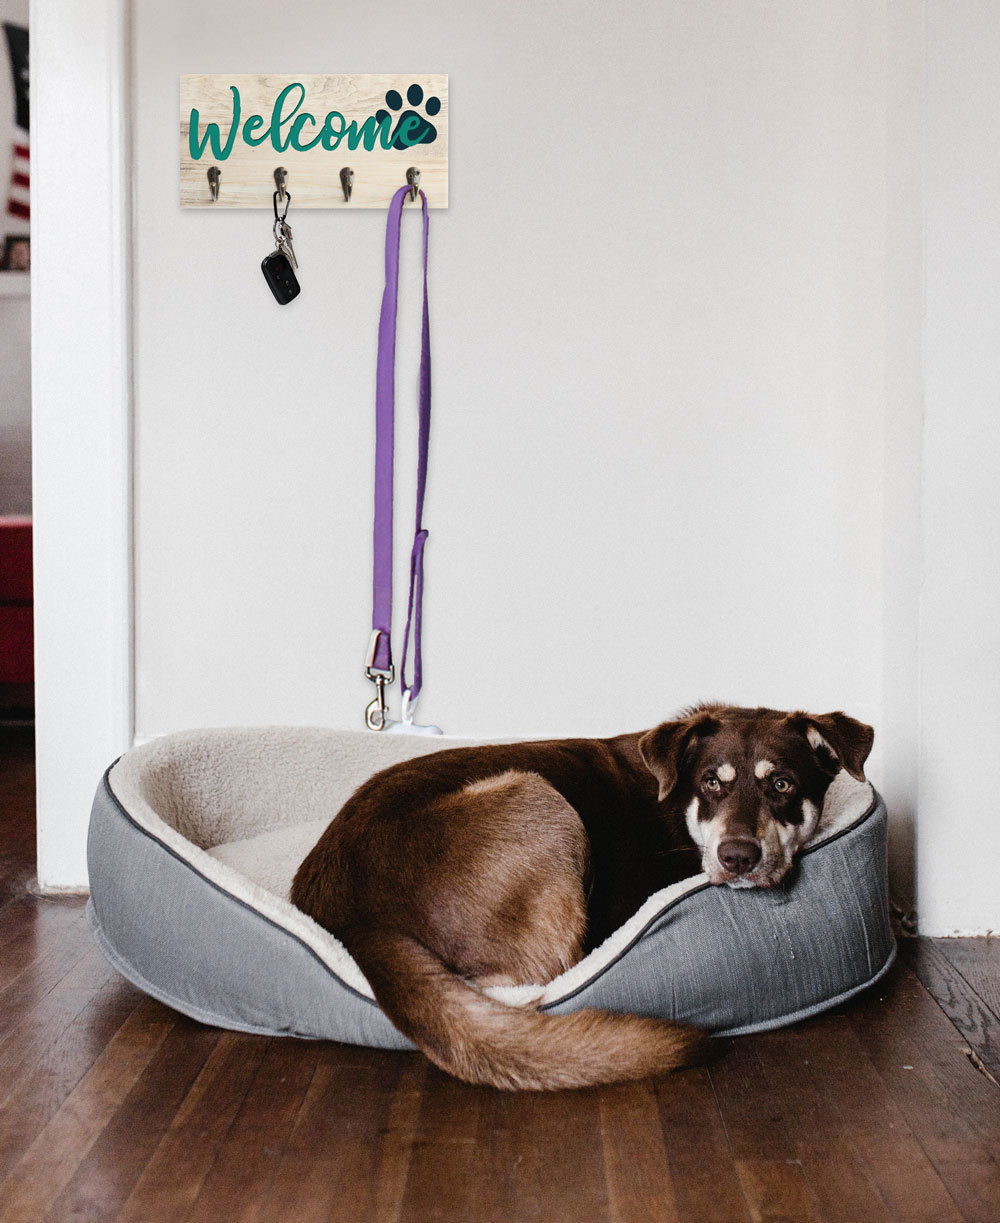 Home Decor Dog Lifestyle